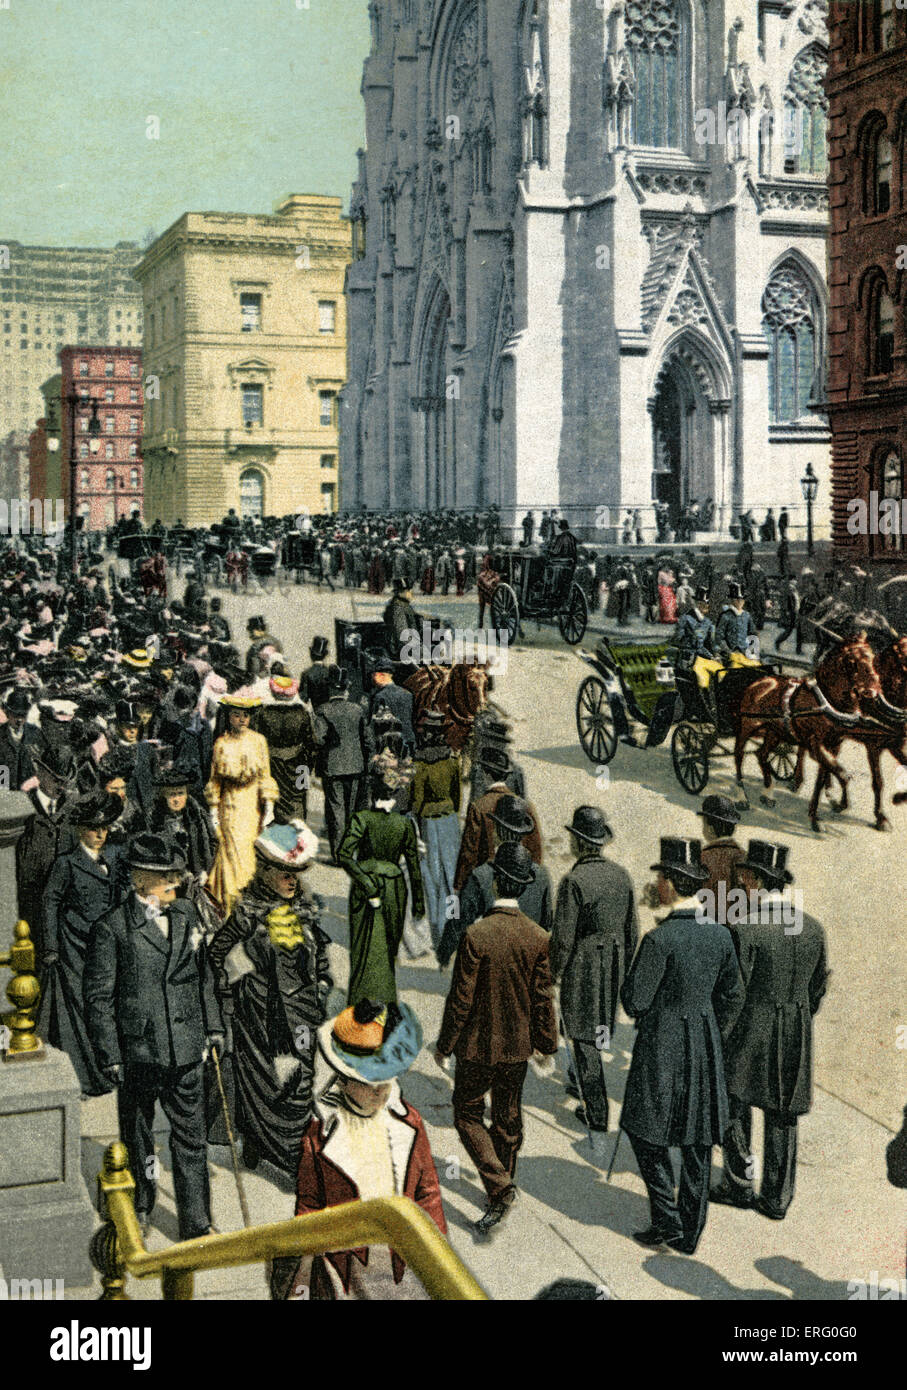 Fifth Avenue, New York, 1890s, near St Patrick's Cathedral- with passers-by strolling down the side walks. - Stock Image